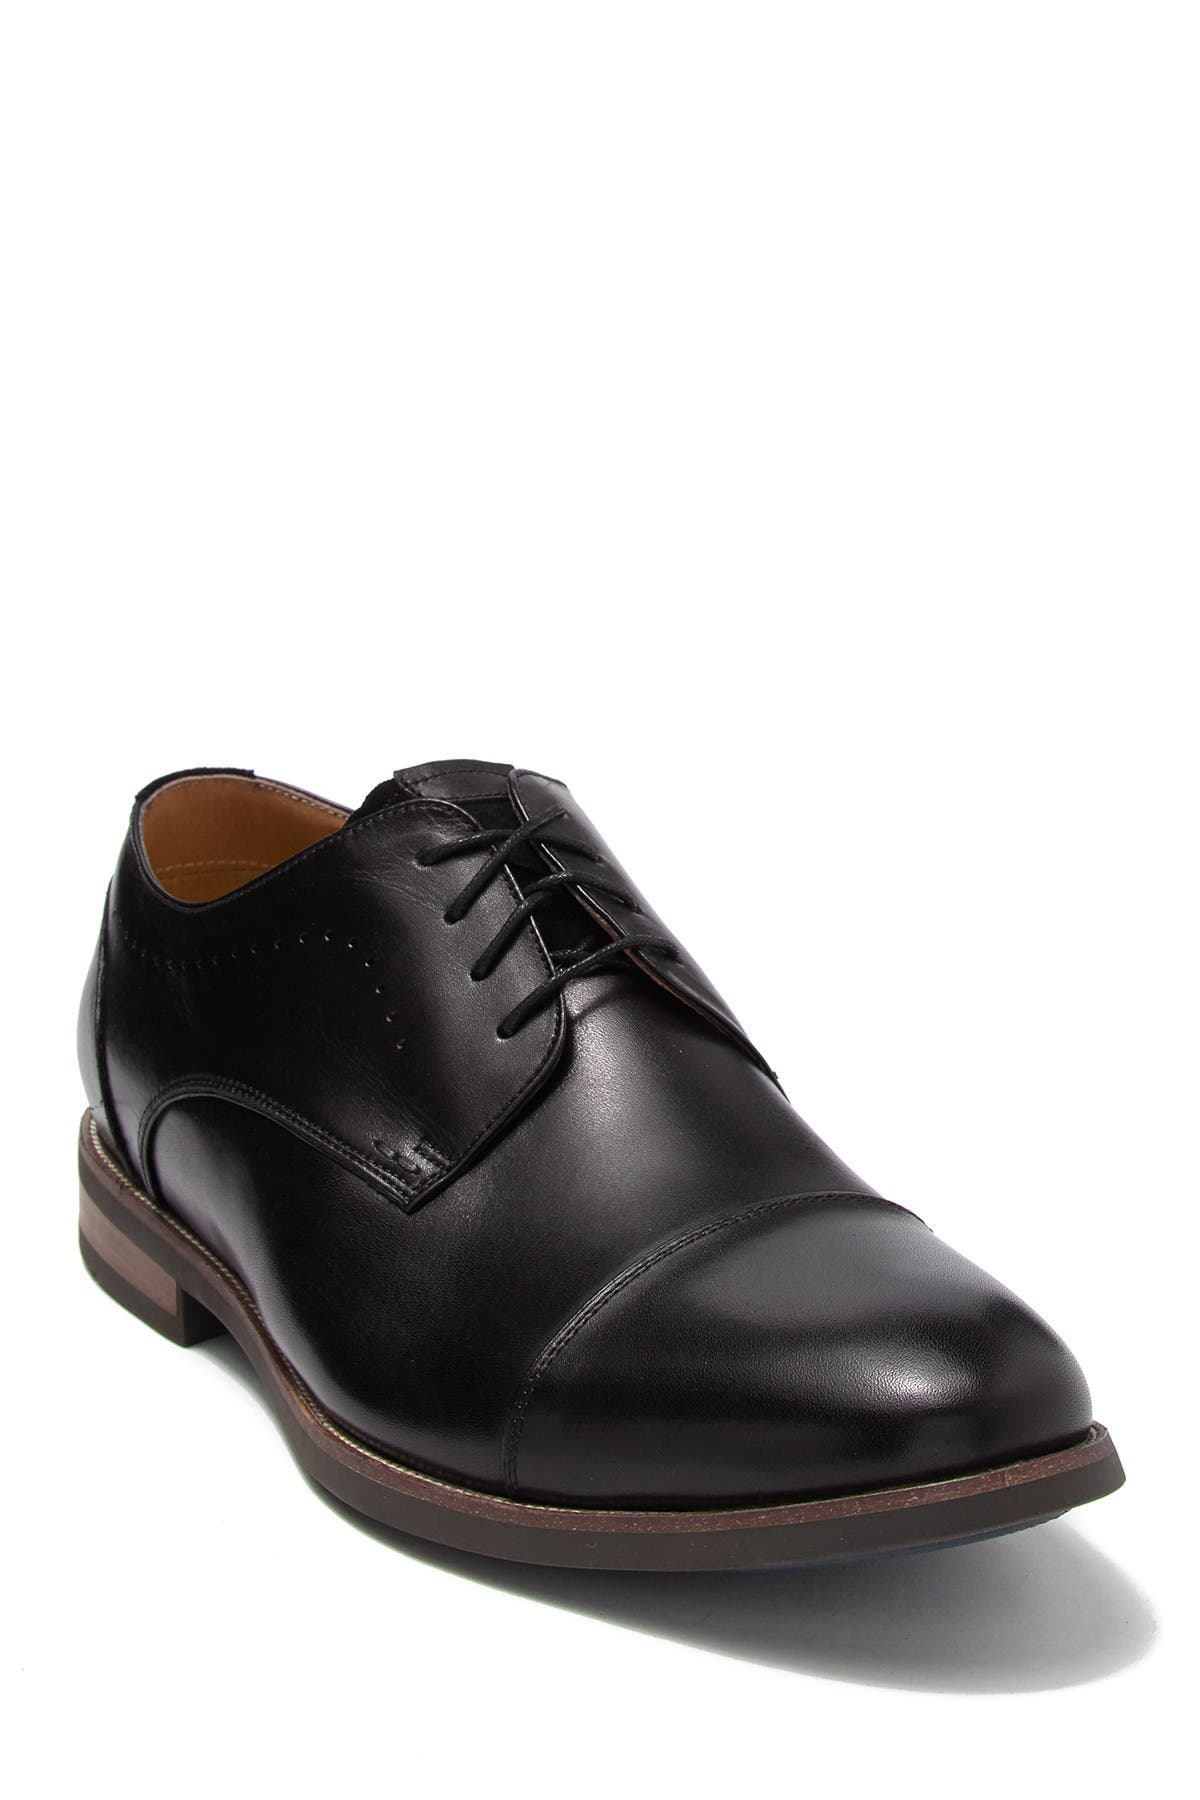 Image of Florsheim Upgrade Leather Cap Toe Derby